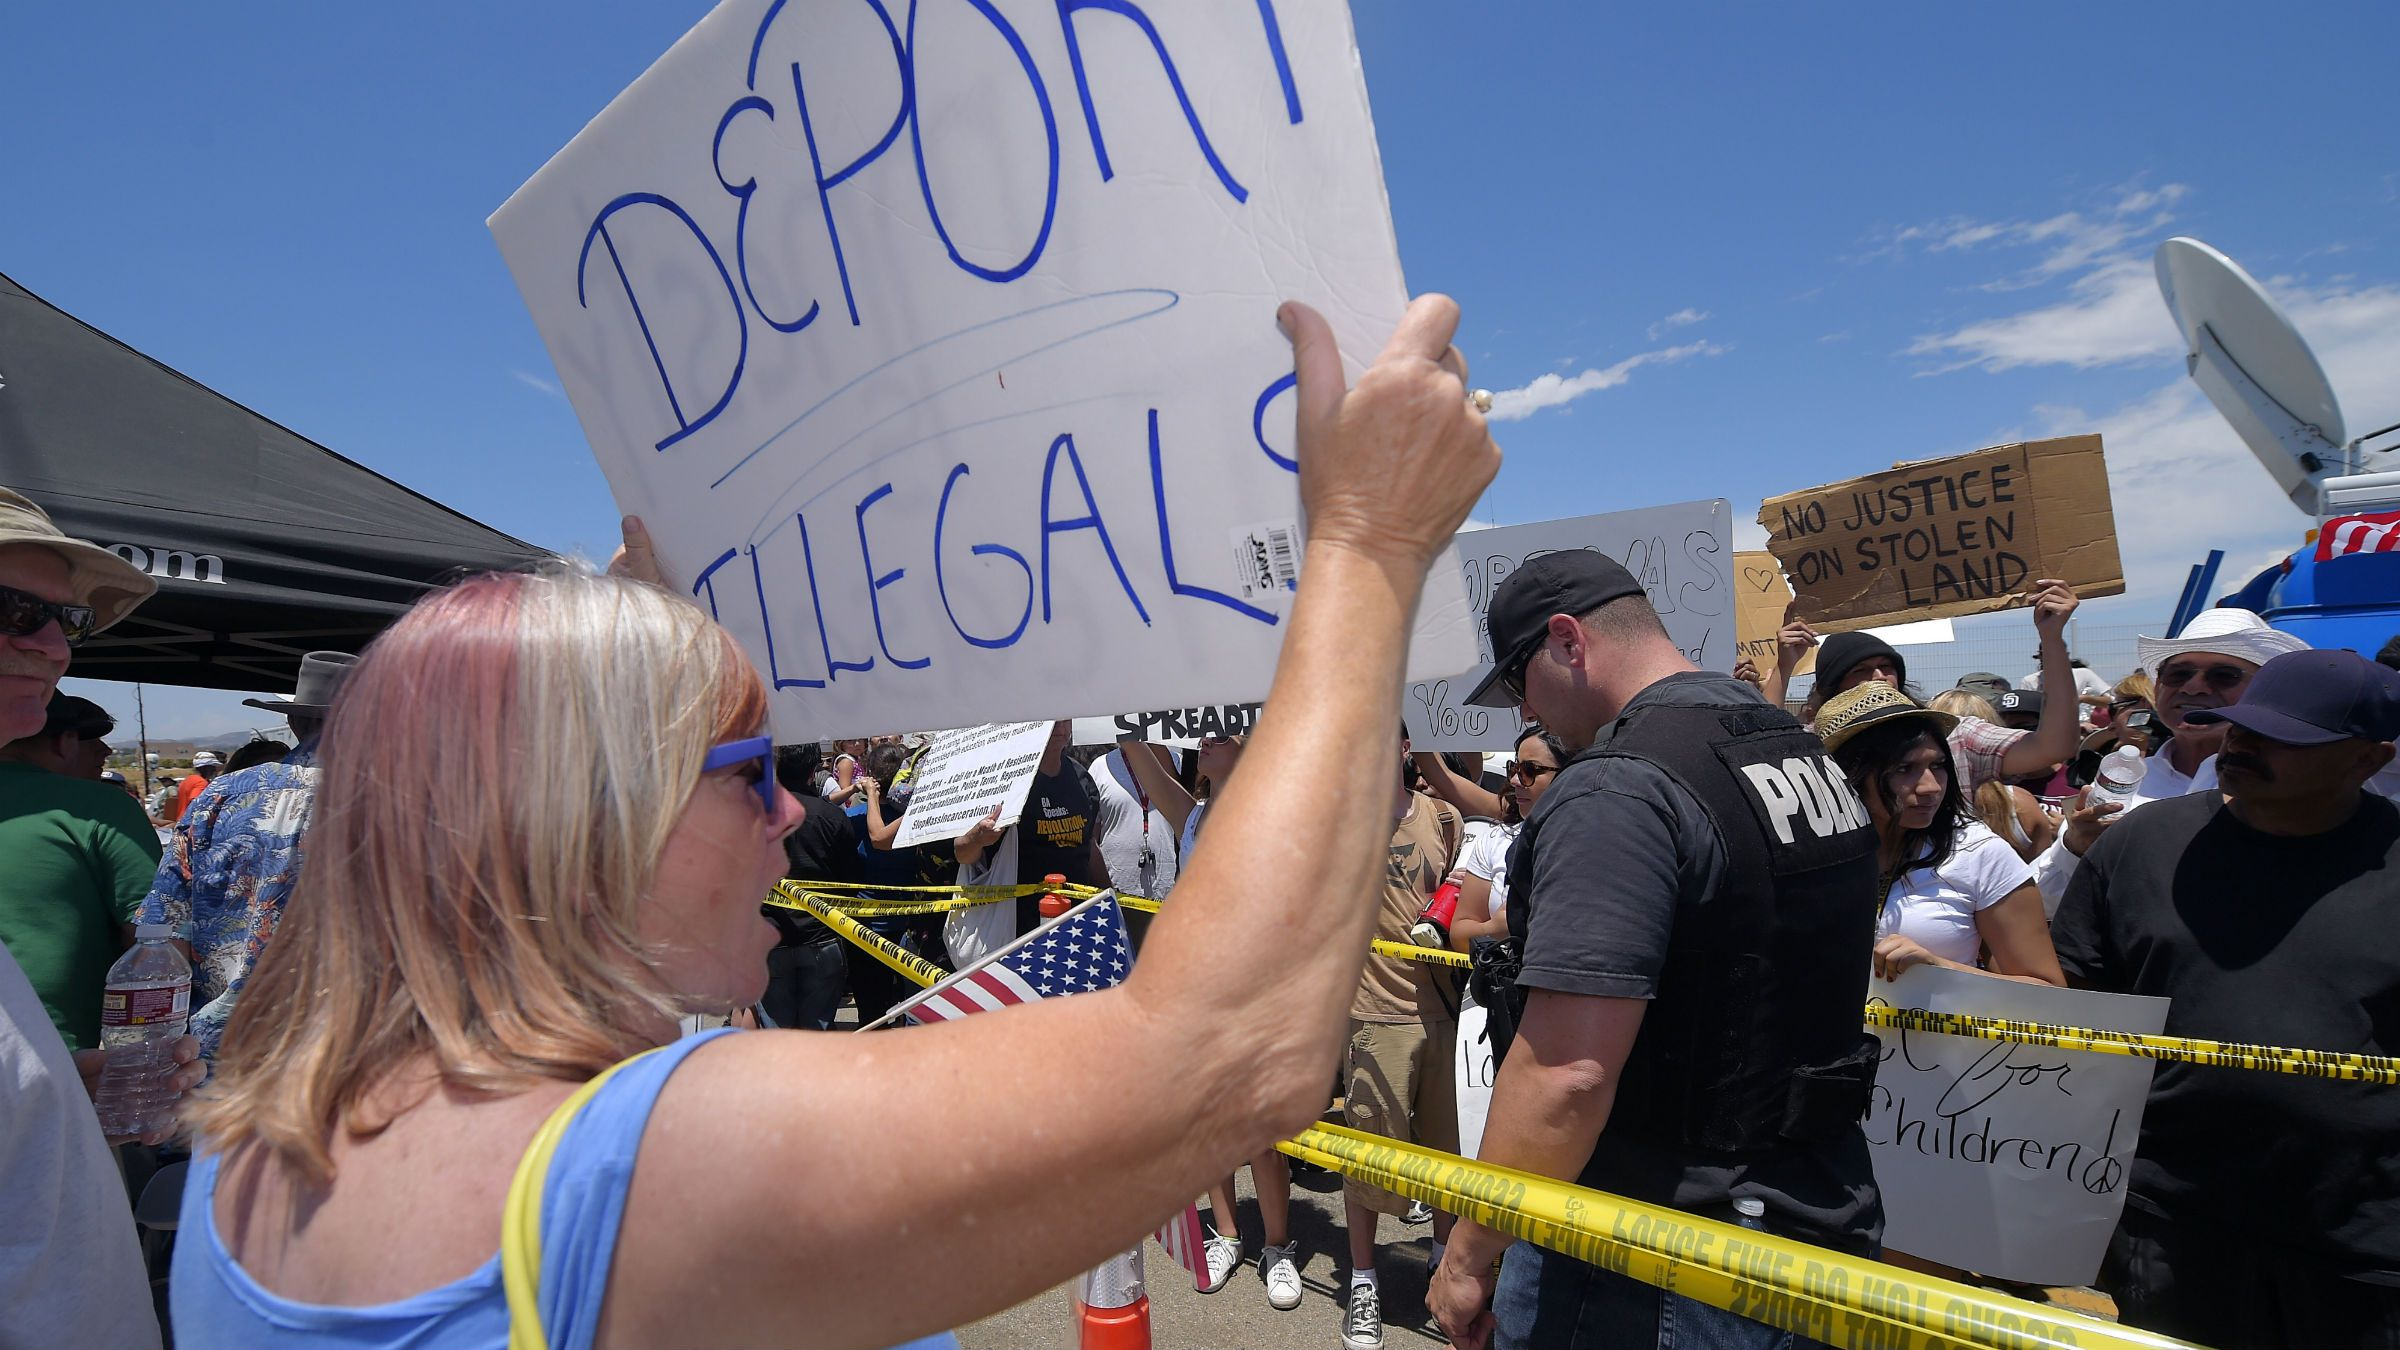 A demonstrator that opposes illegal immigration, left, shouts at immigration supporters, Friday, July 4, 2014, outside a U.S. Border Patrol station in Murrieta, Calif. Demonstrators on both sides of the immigration debate had gathered where the agency was foiled earlier this week in an attempt to bus in and process some of the immigrants who have flooded the Texas border with Mexico. (AP Photo/Mark J. Terrill)